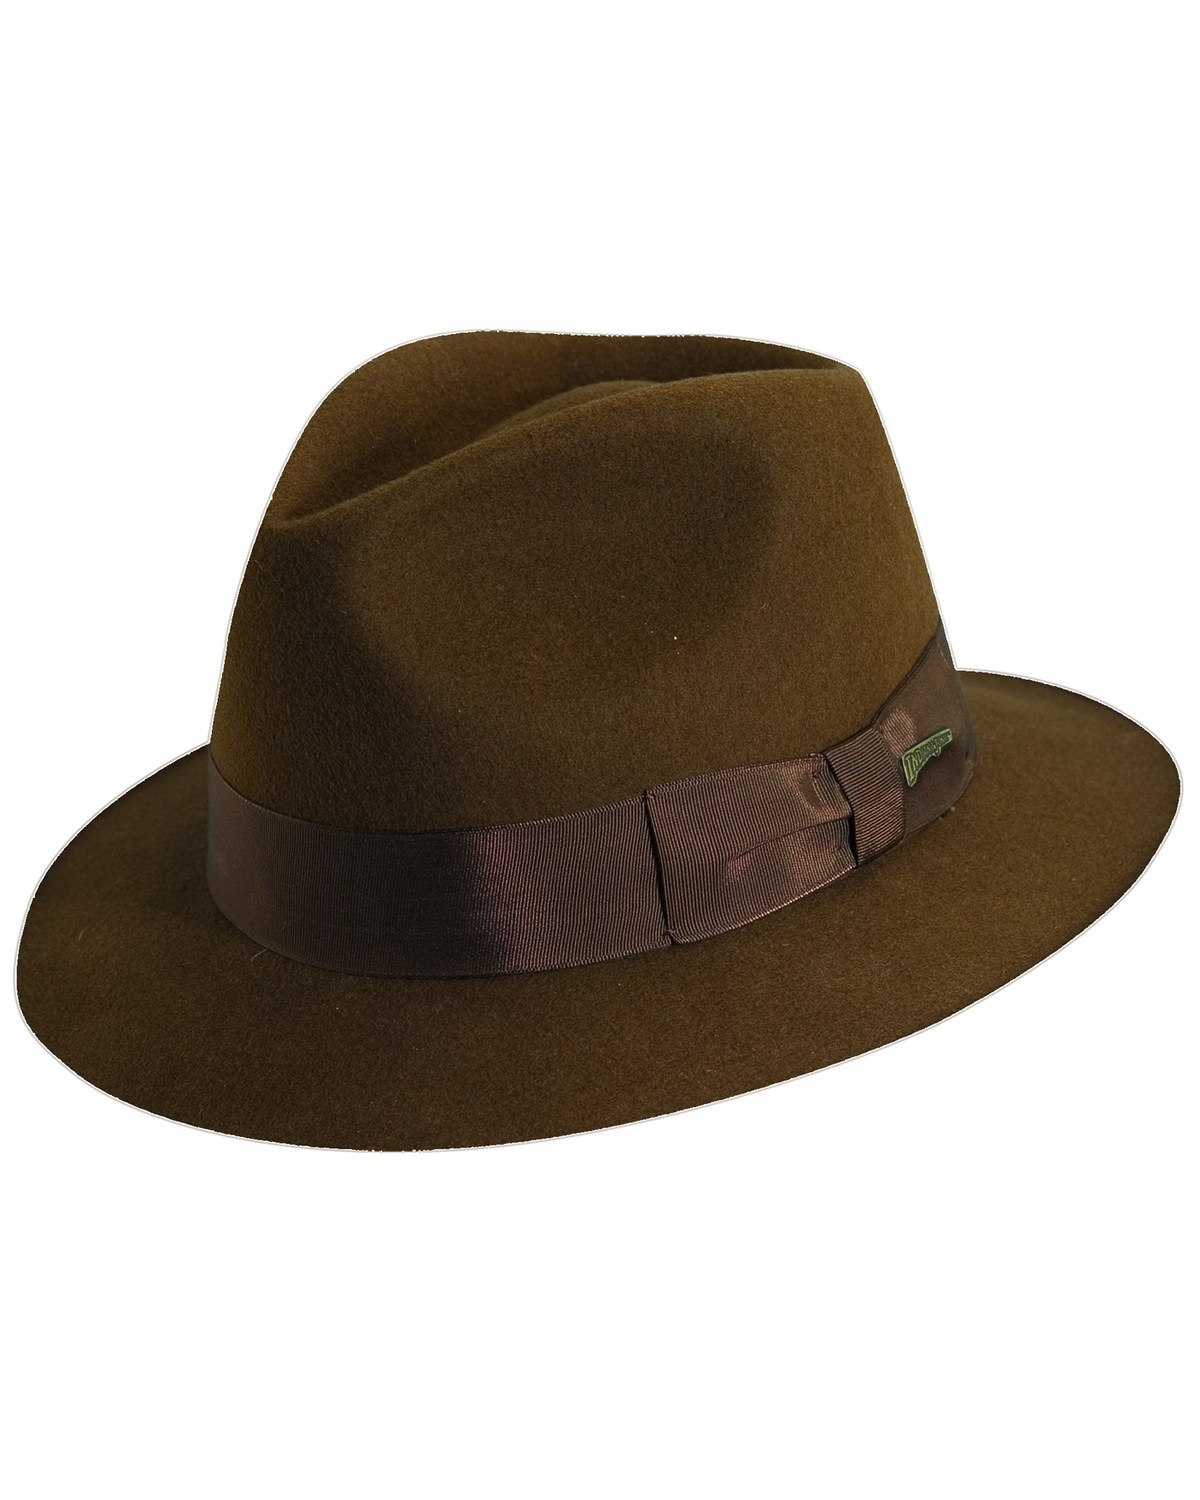 Indiana Jones Pinch Front Wool Felt Fedora Hat  4bba7333623